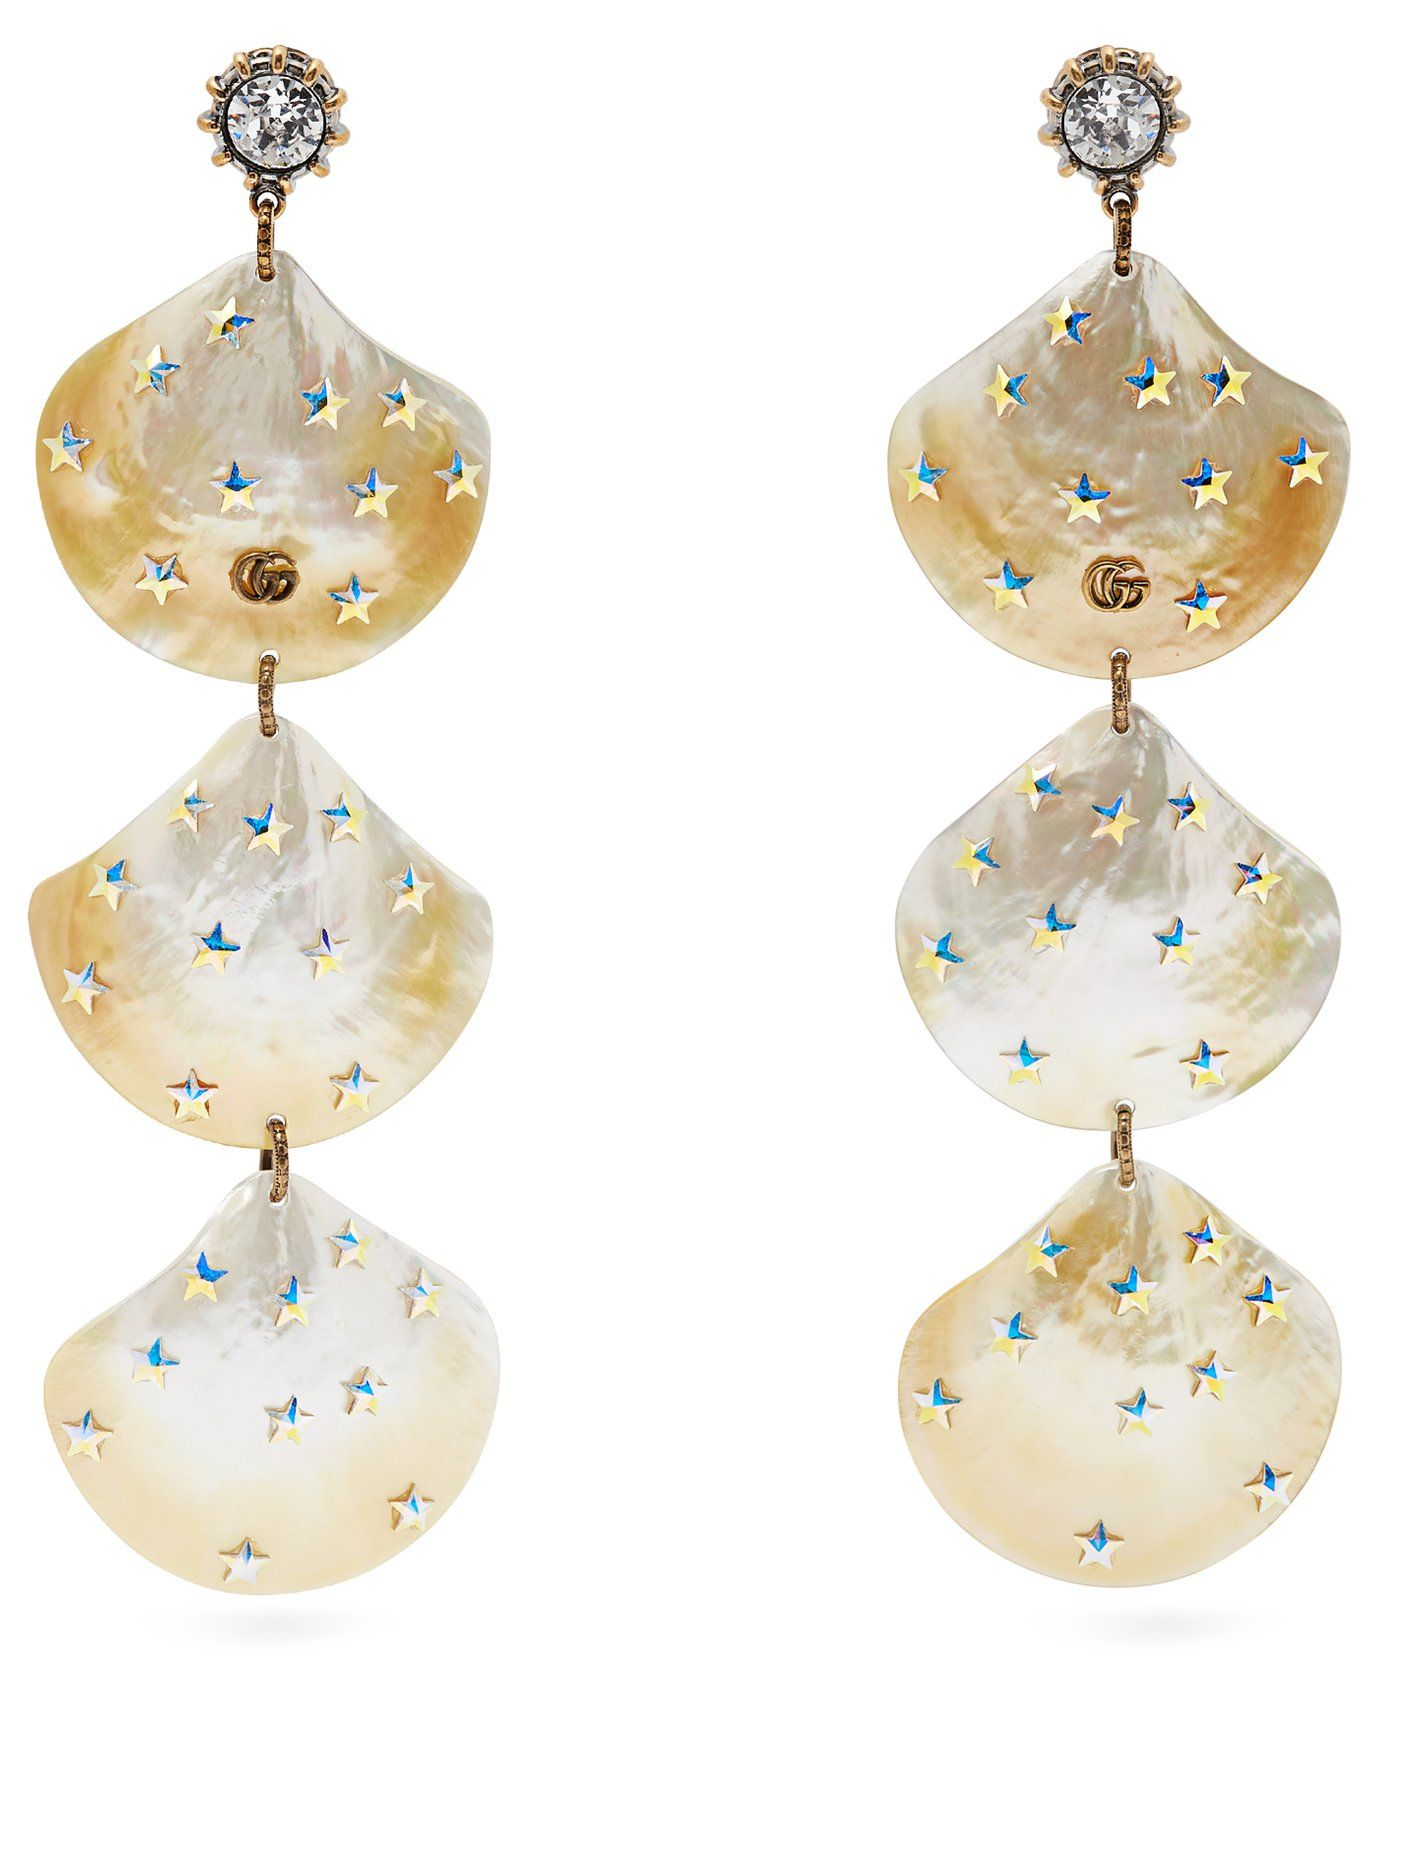 057f79a8854 GG mother-of-pearl shell-drop earrings